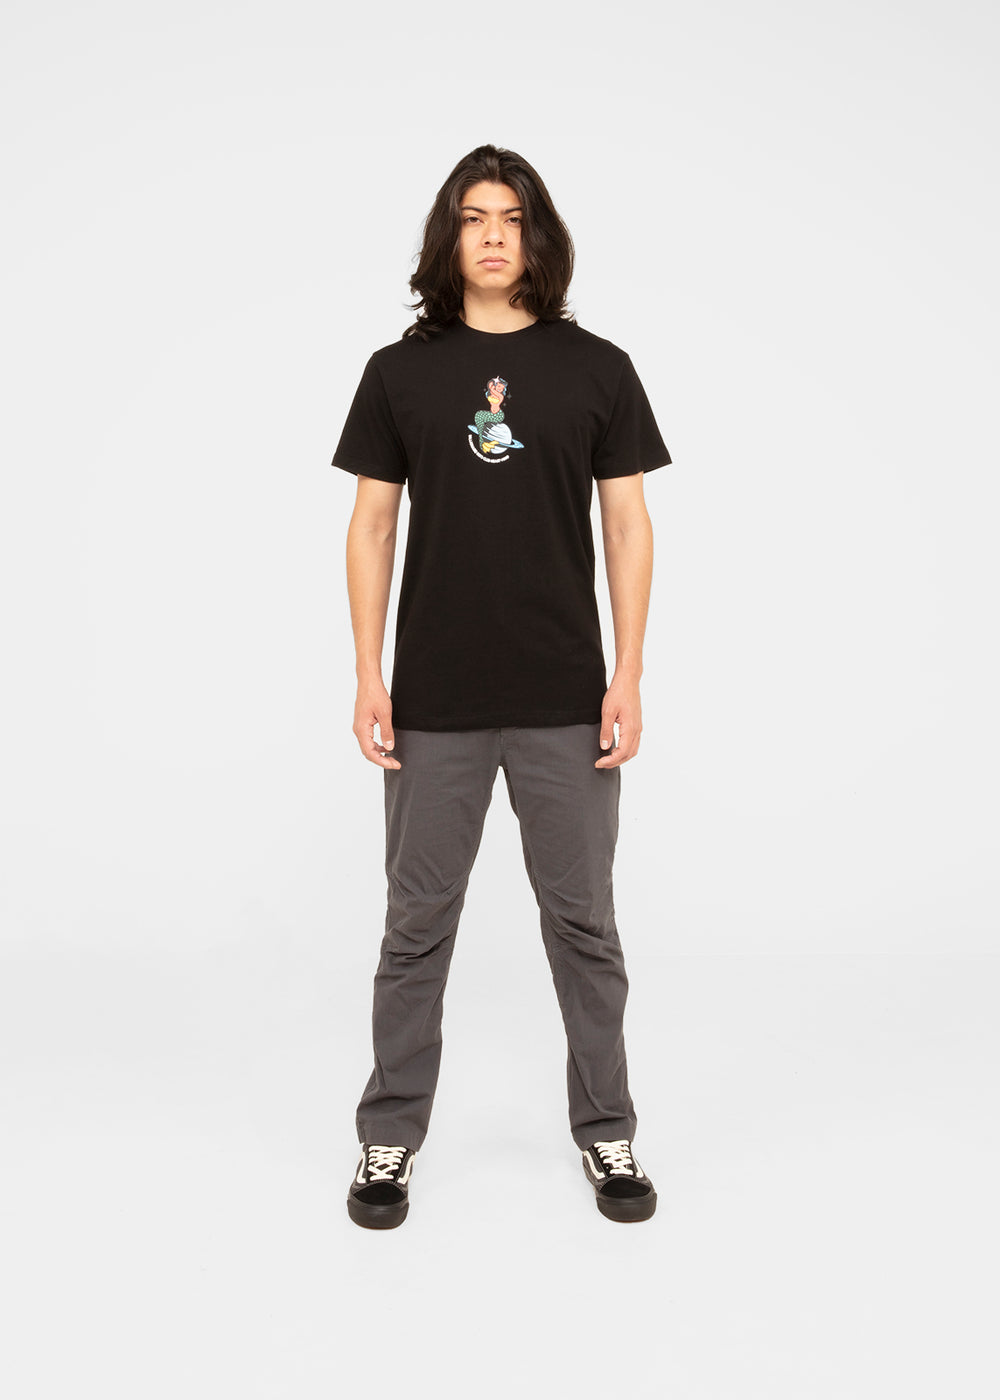 billionaire-boys-club-mermaid-ss-tee-891-7208-blk-blk-4